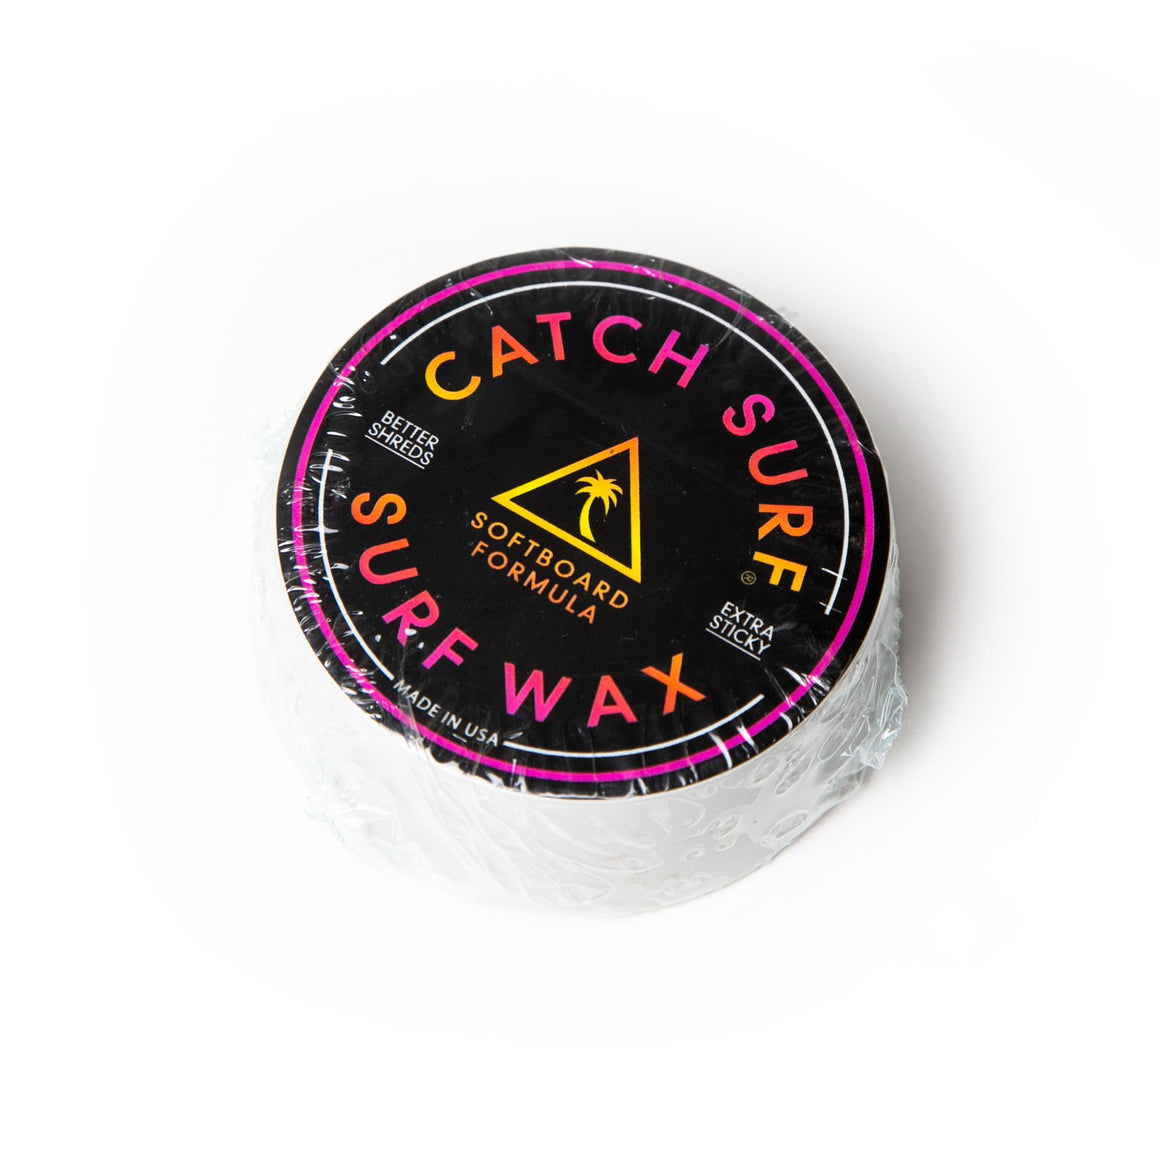 Surfboard Wax - Catch Surf Wax